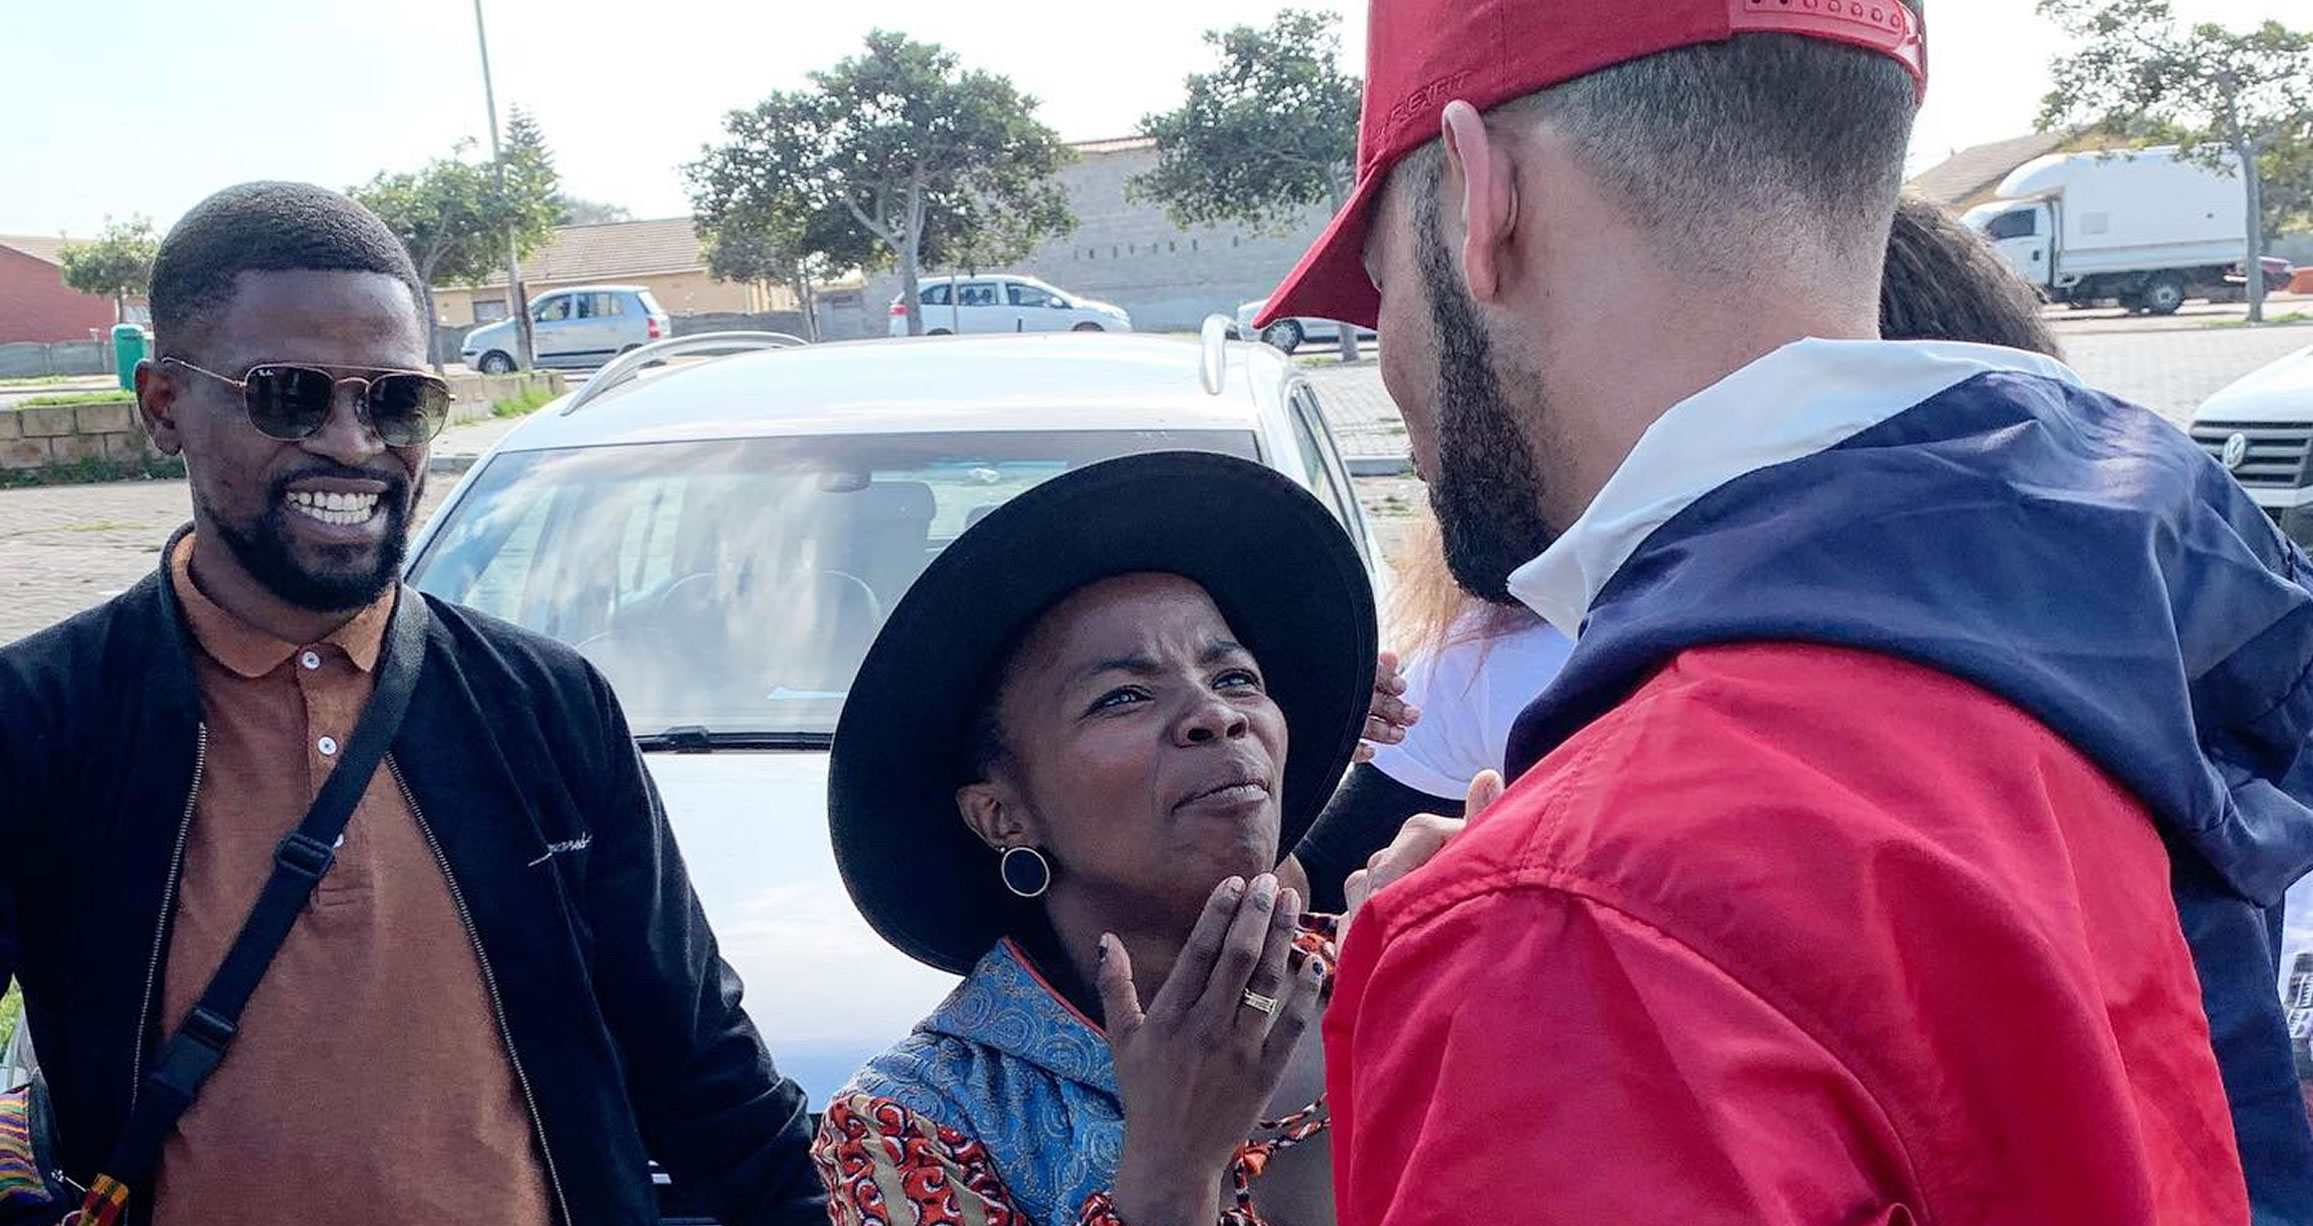 Thulani Headman watches as South African musical legend Zolani Mahola meets    Cape Town hip hop sensation Riyadh 'YoungstaCPT' Roberts    for the first time.